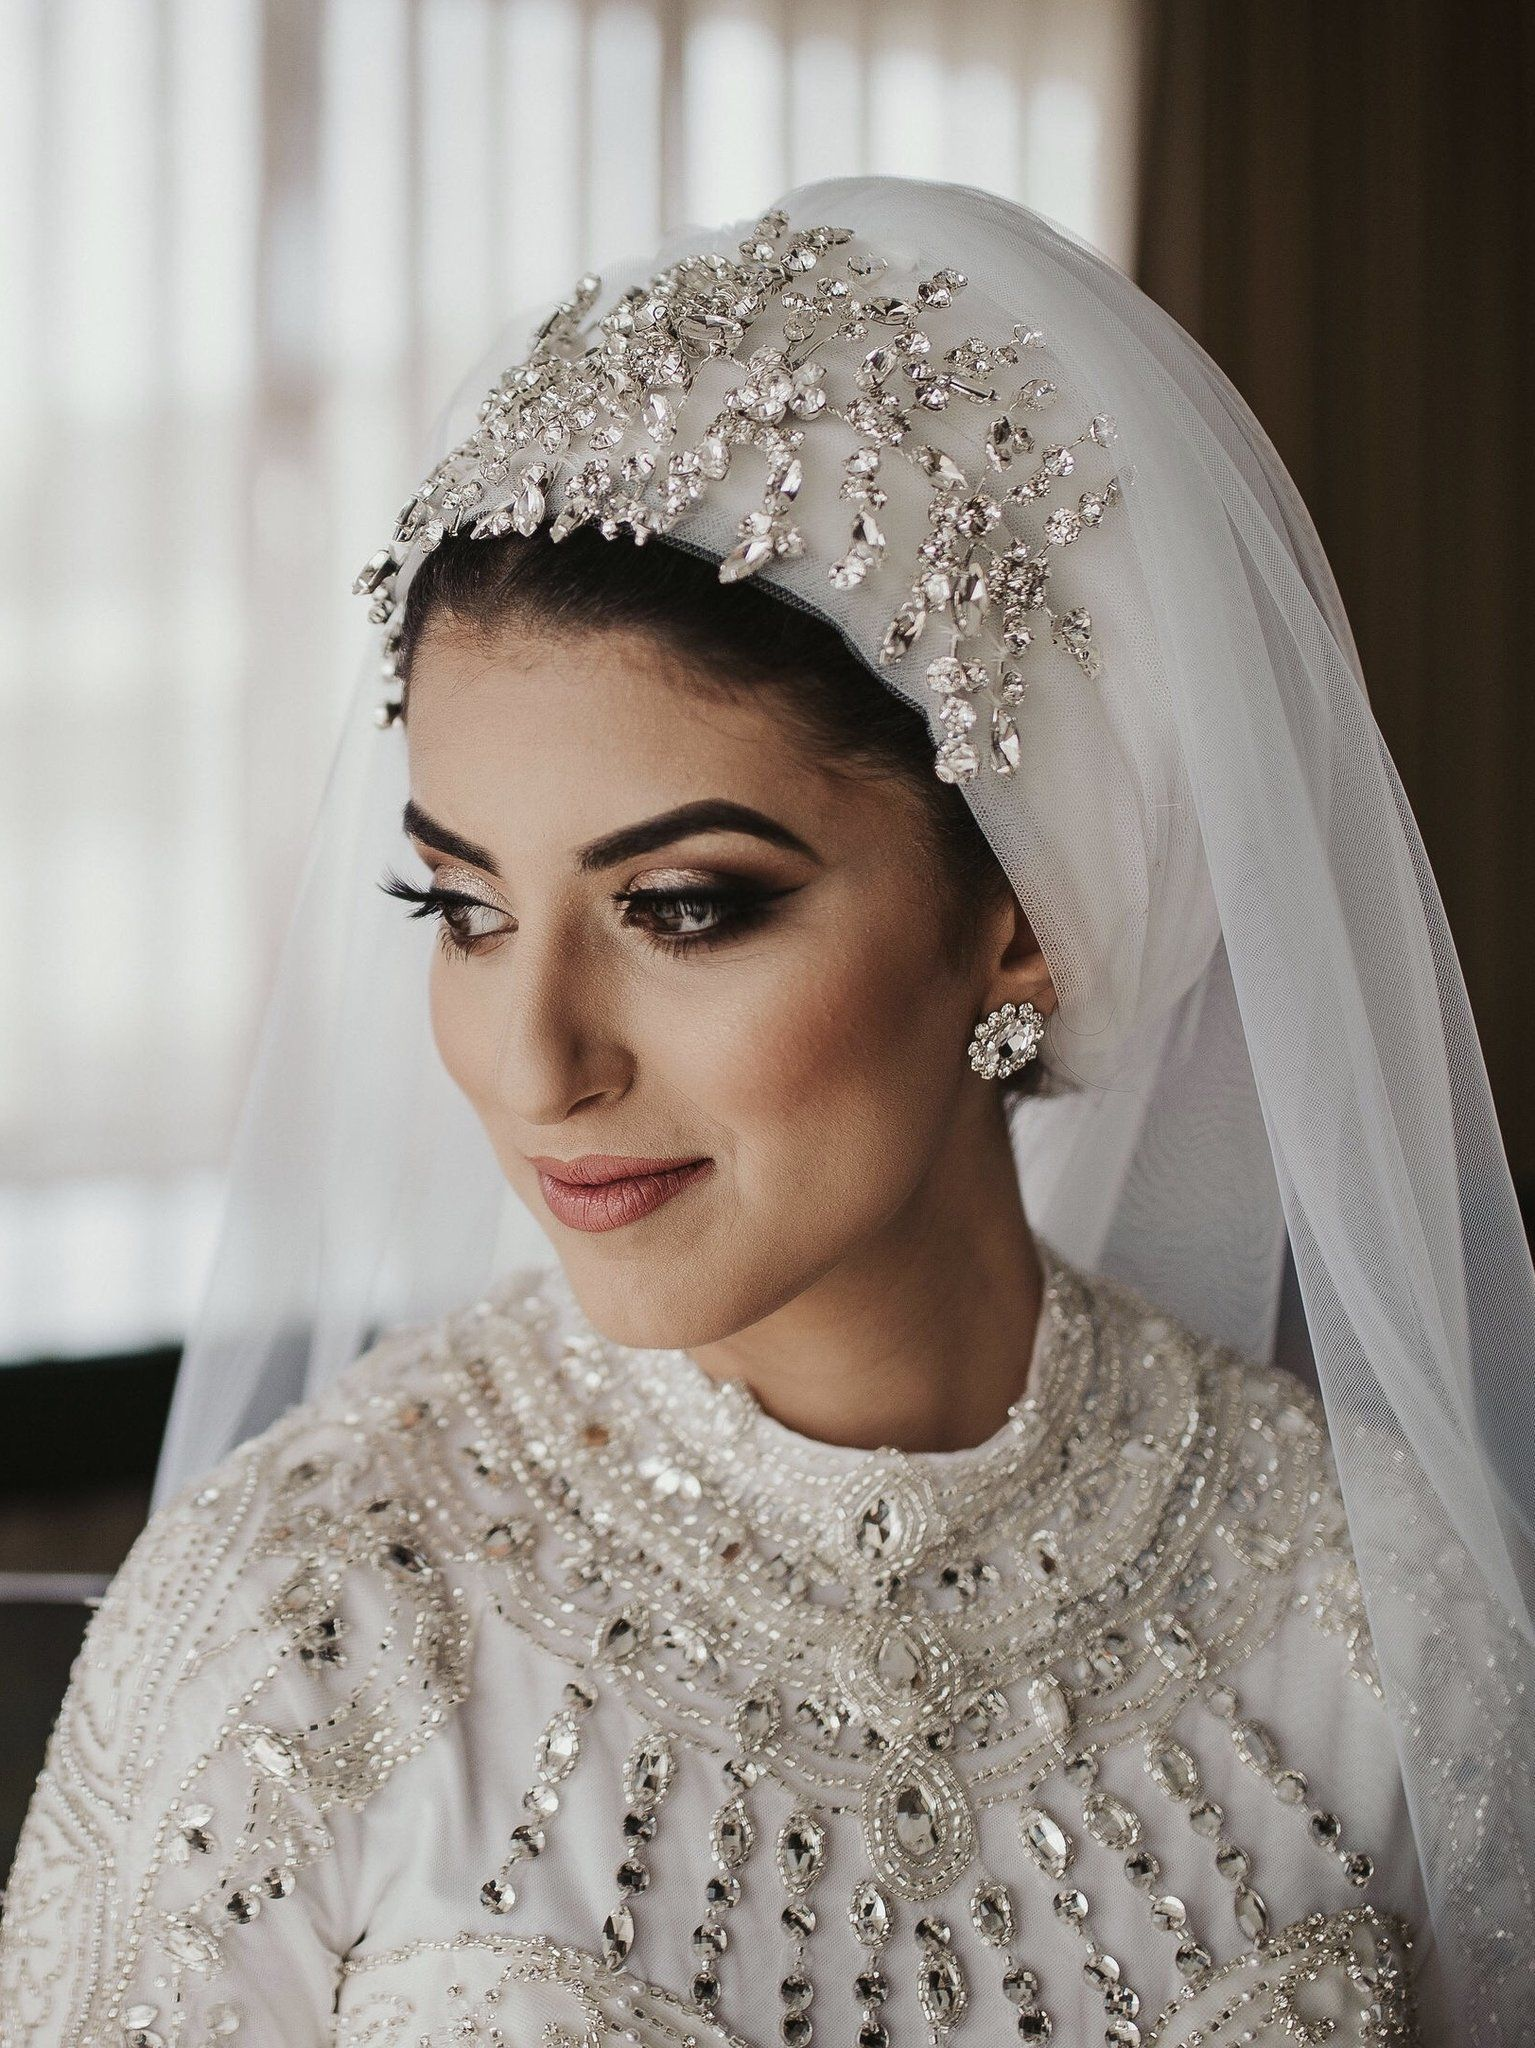 Turban Nada Hijab Couture Bridal Hijab Ab Muscles Word Conjures Up Images Of Gorgeous Muslim Girls With In 2020 Kleider Hochzeit Hijab Braut Hochzeit Hijab Stile